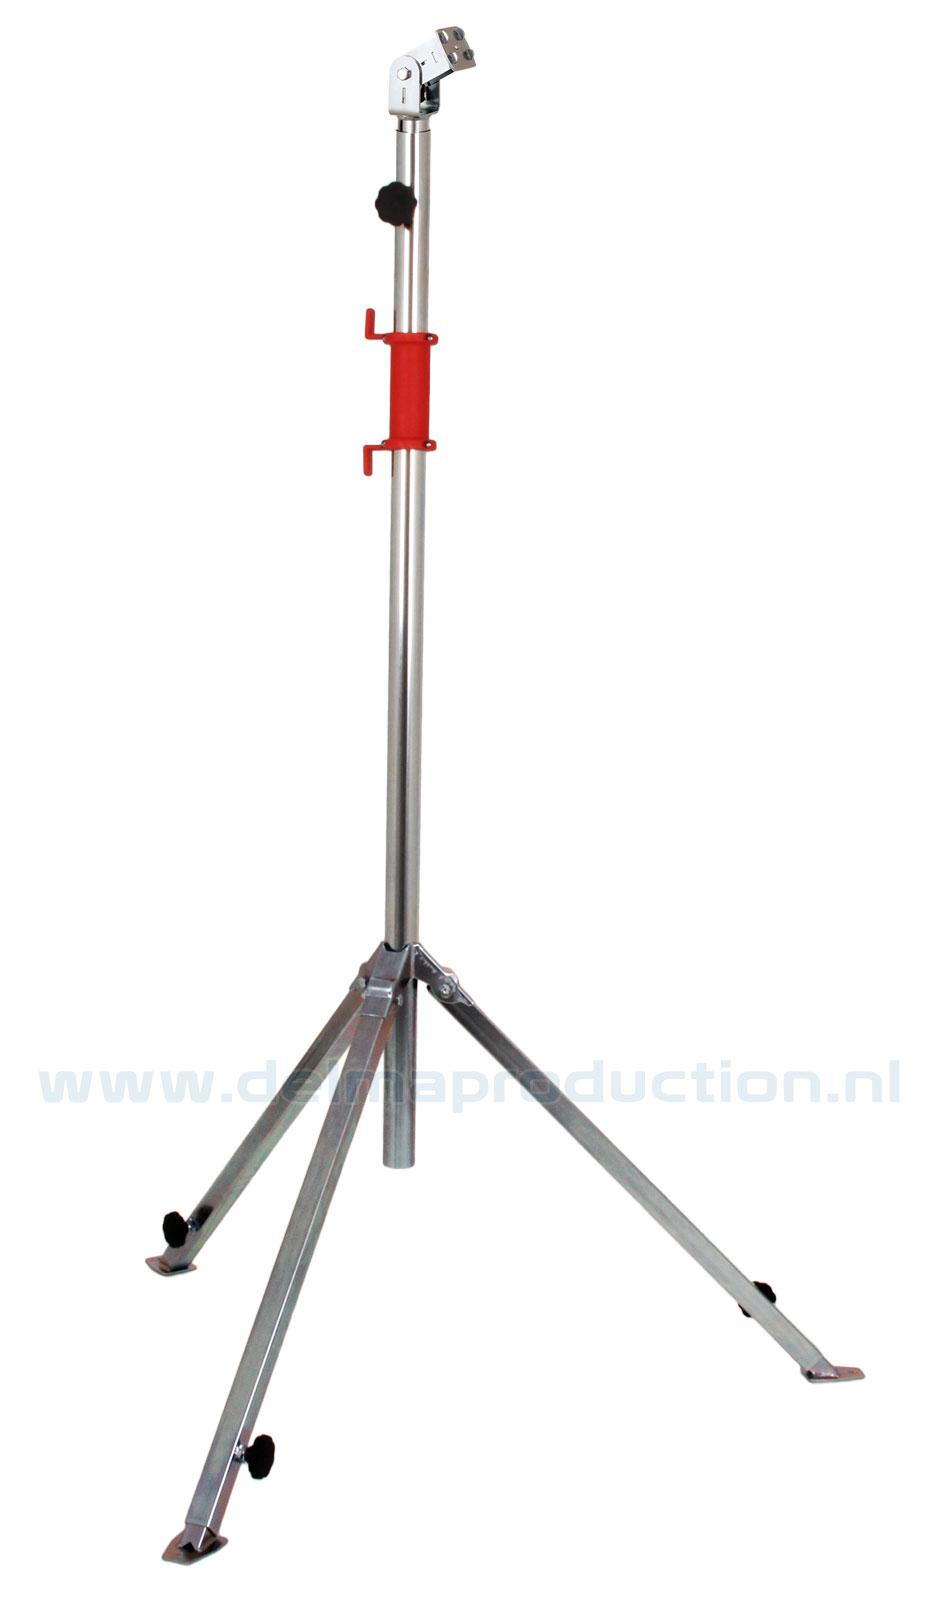 Tripod worklight stand 2-part, adjustable undercarriage, quick release system